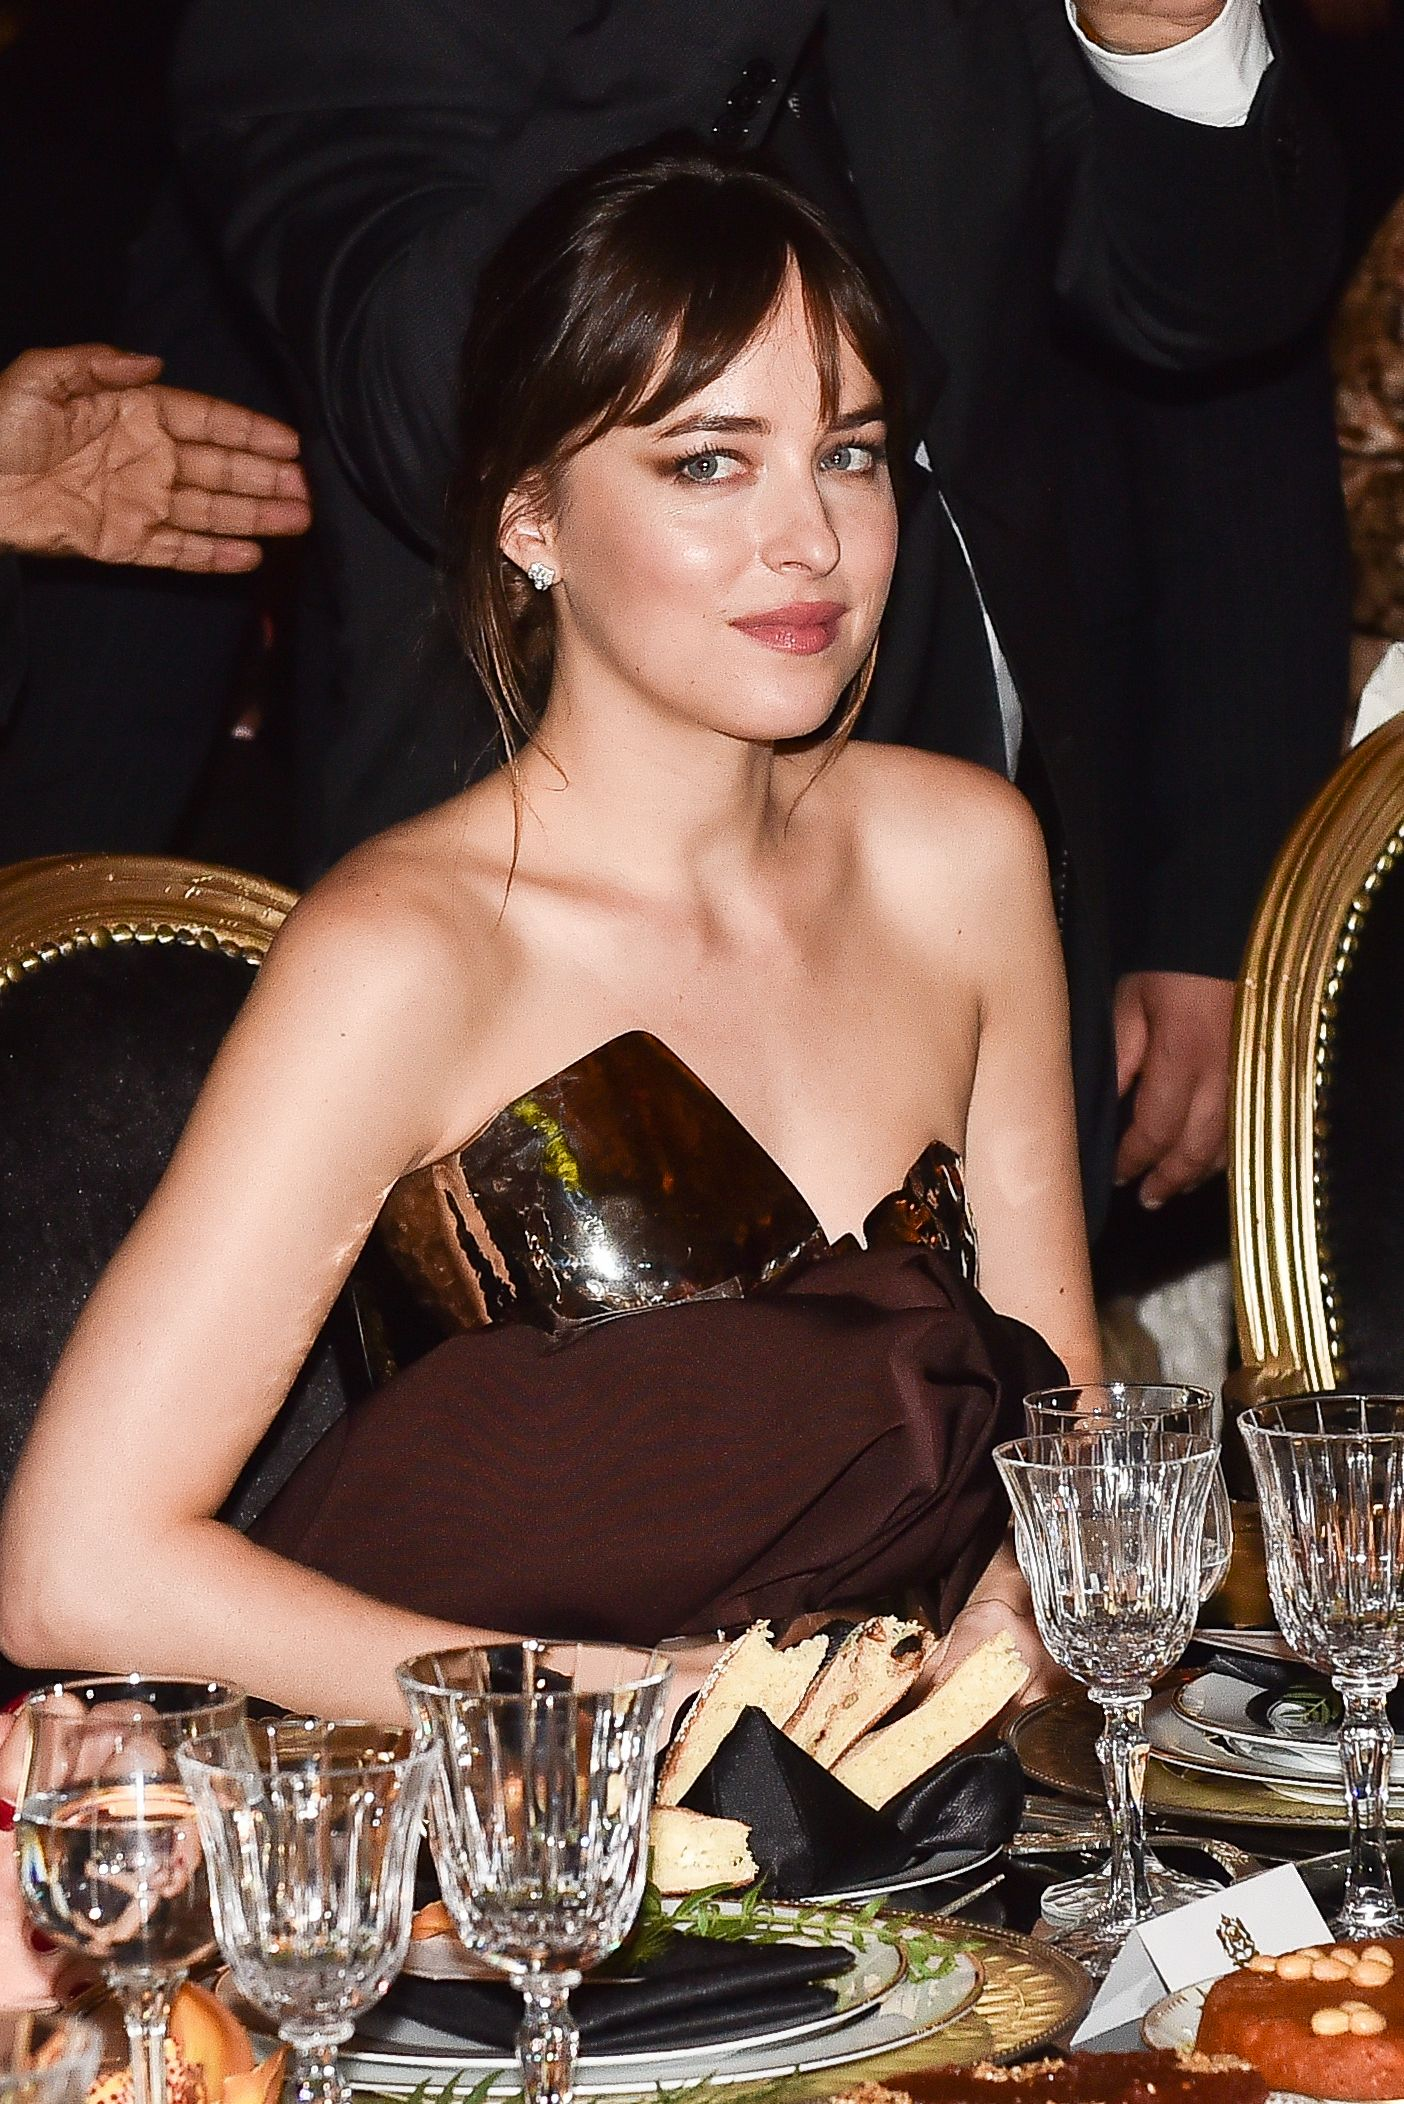 Known for her breakout role as Anastasia Steele in the Fifty Shades of Gray trilogy, Dakota Johnson was named Miss Golden Globe in 2006– carrying on the Hollywood legacy of both her mother, Melanie Griffith, who was also a Miss Golden Globe.